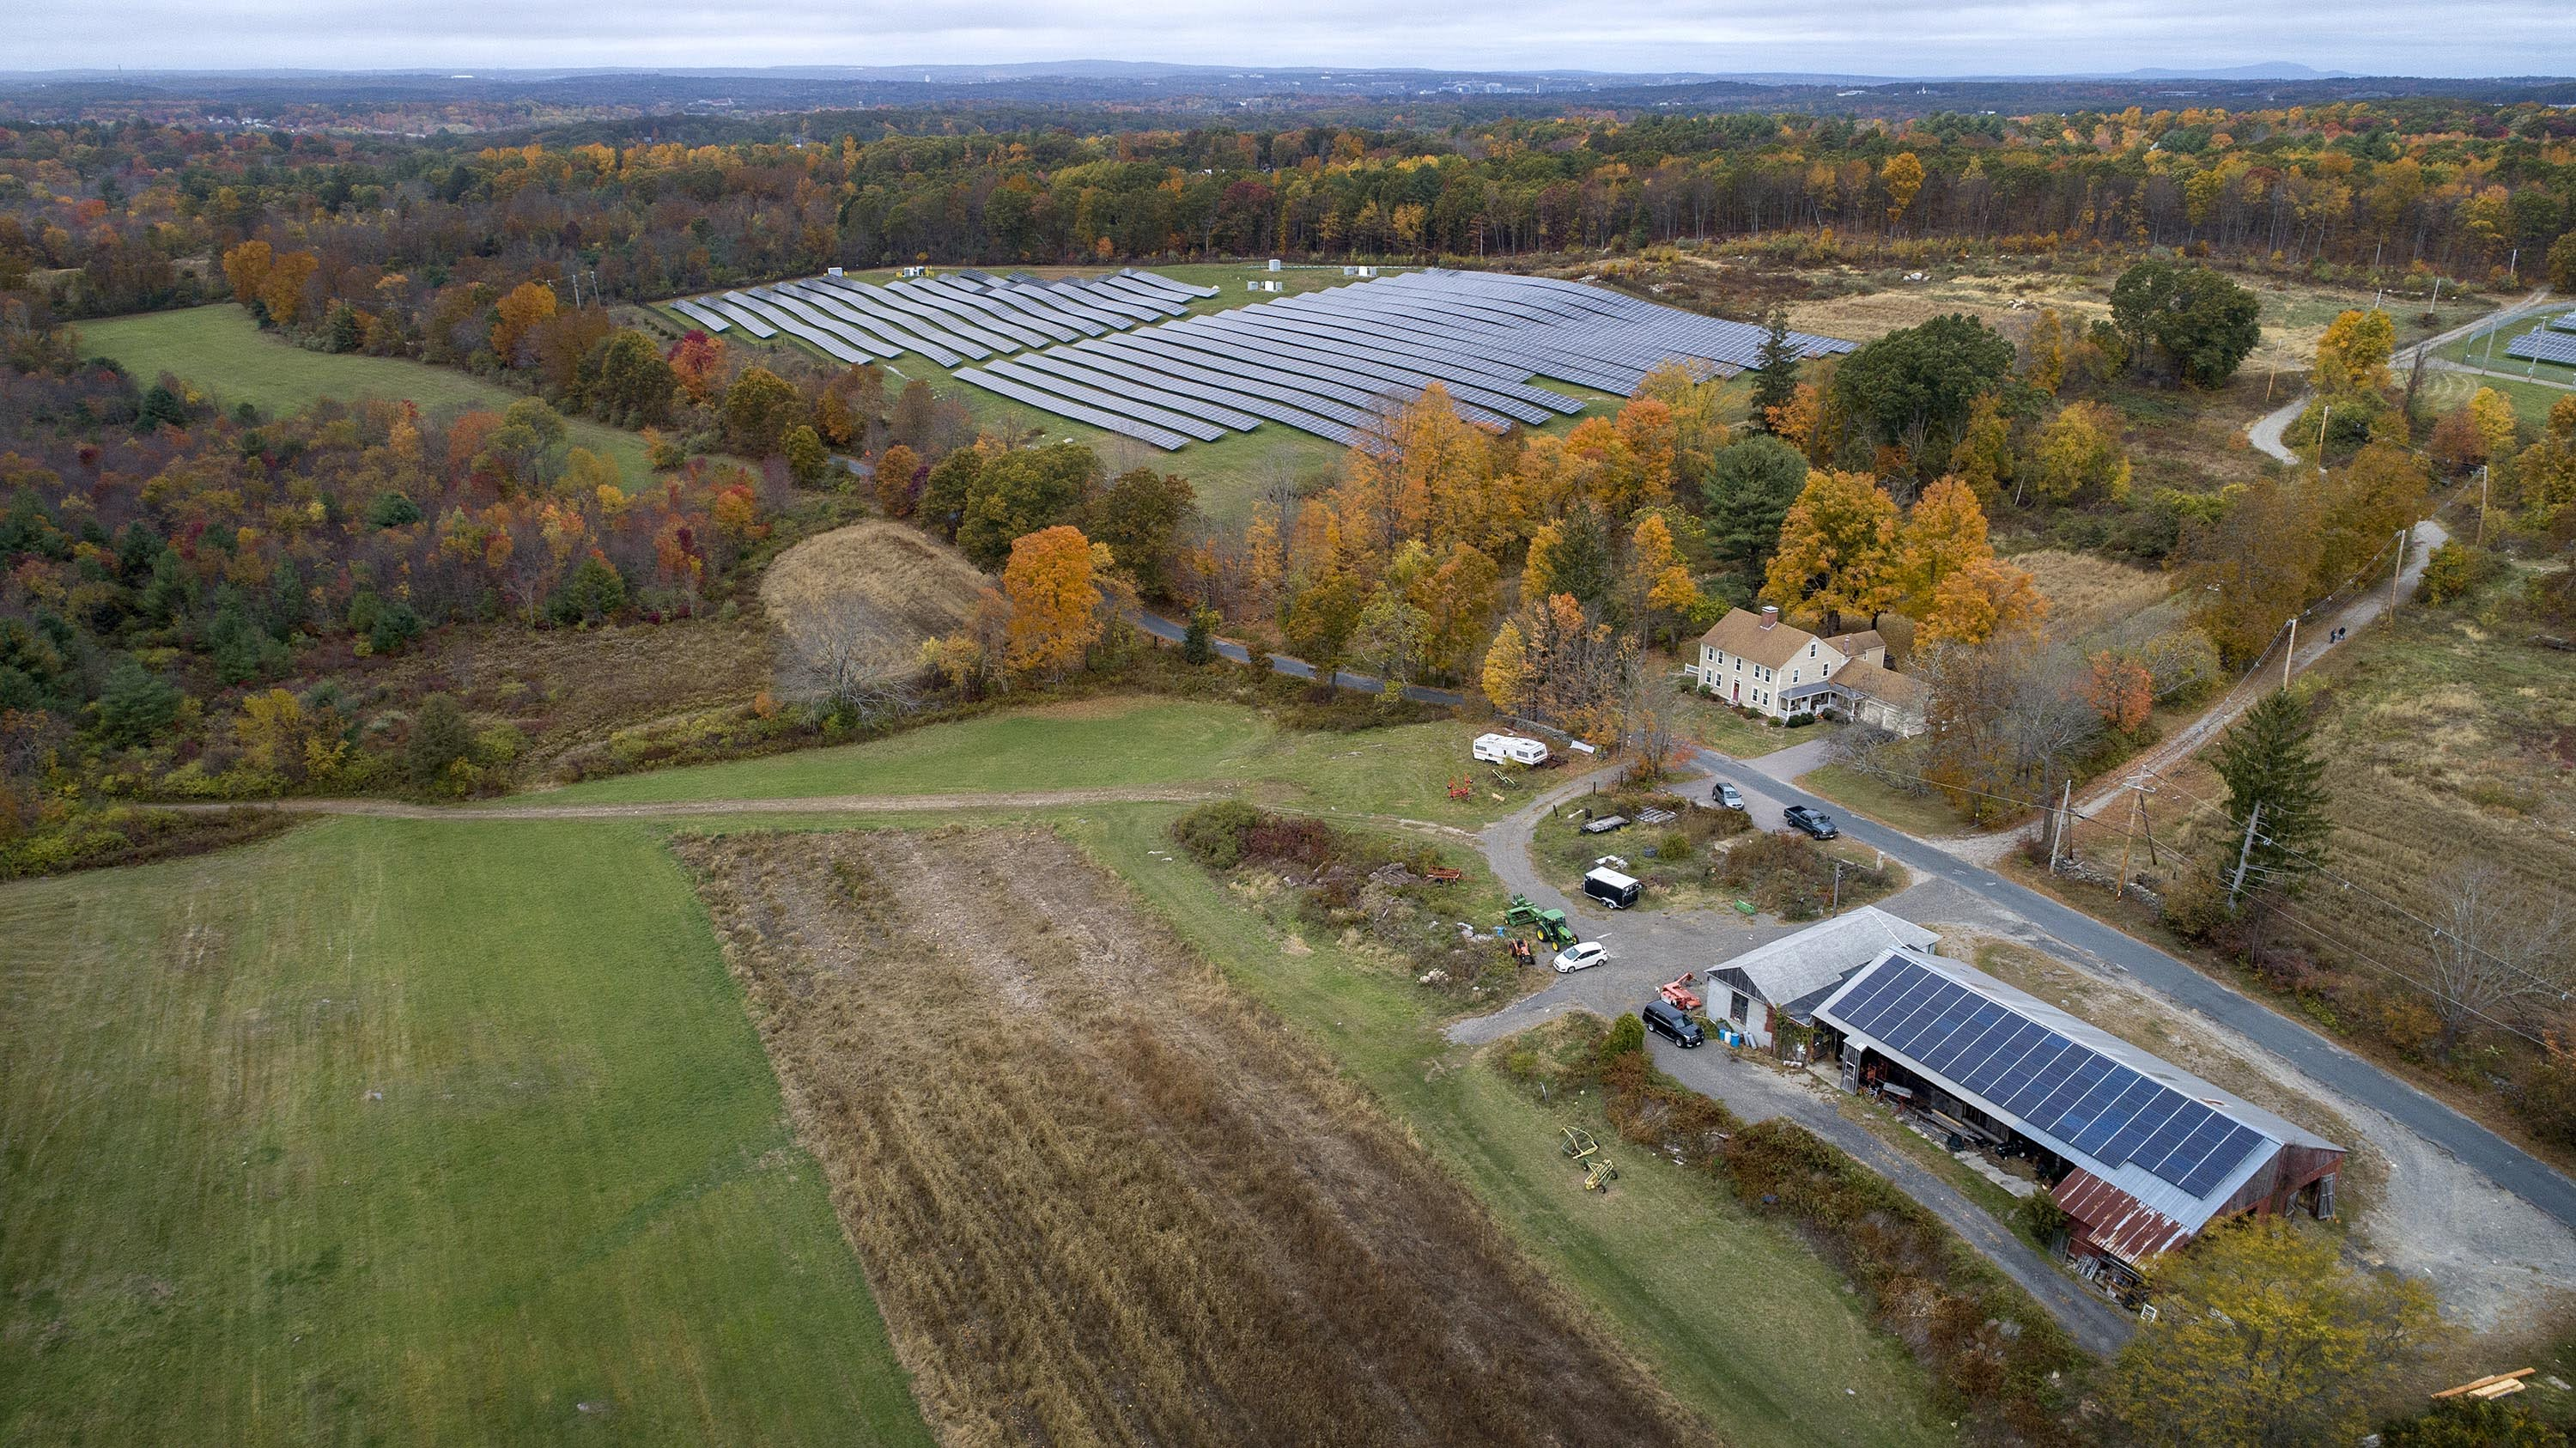 Farming the sun, Knowlton Farm in Grafton has solar panels on its barn roof, and in fields nearby. (Robin Lubbock/WBUR)